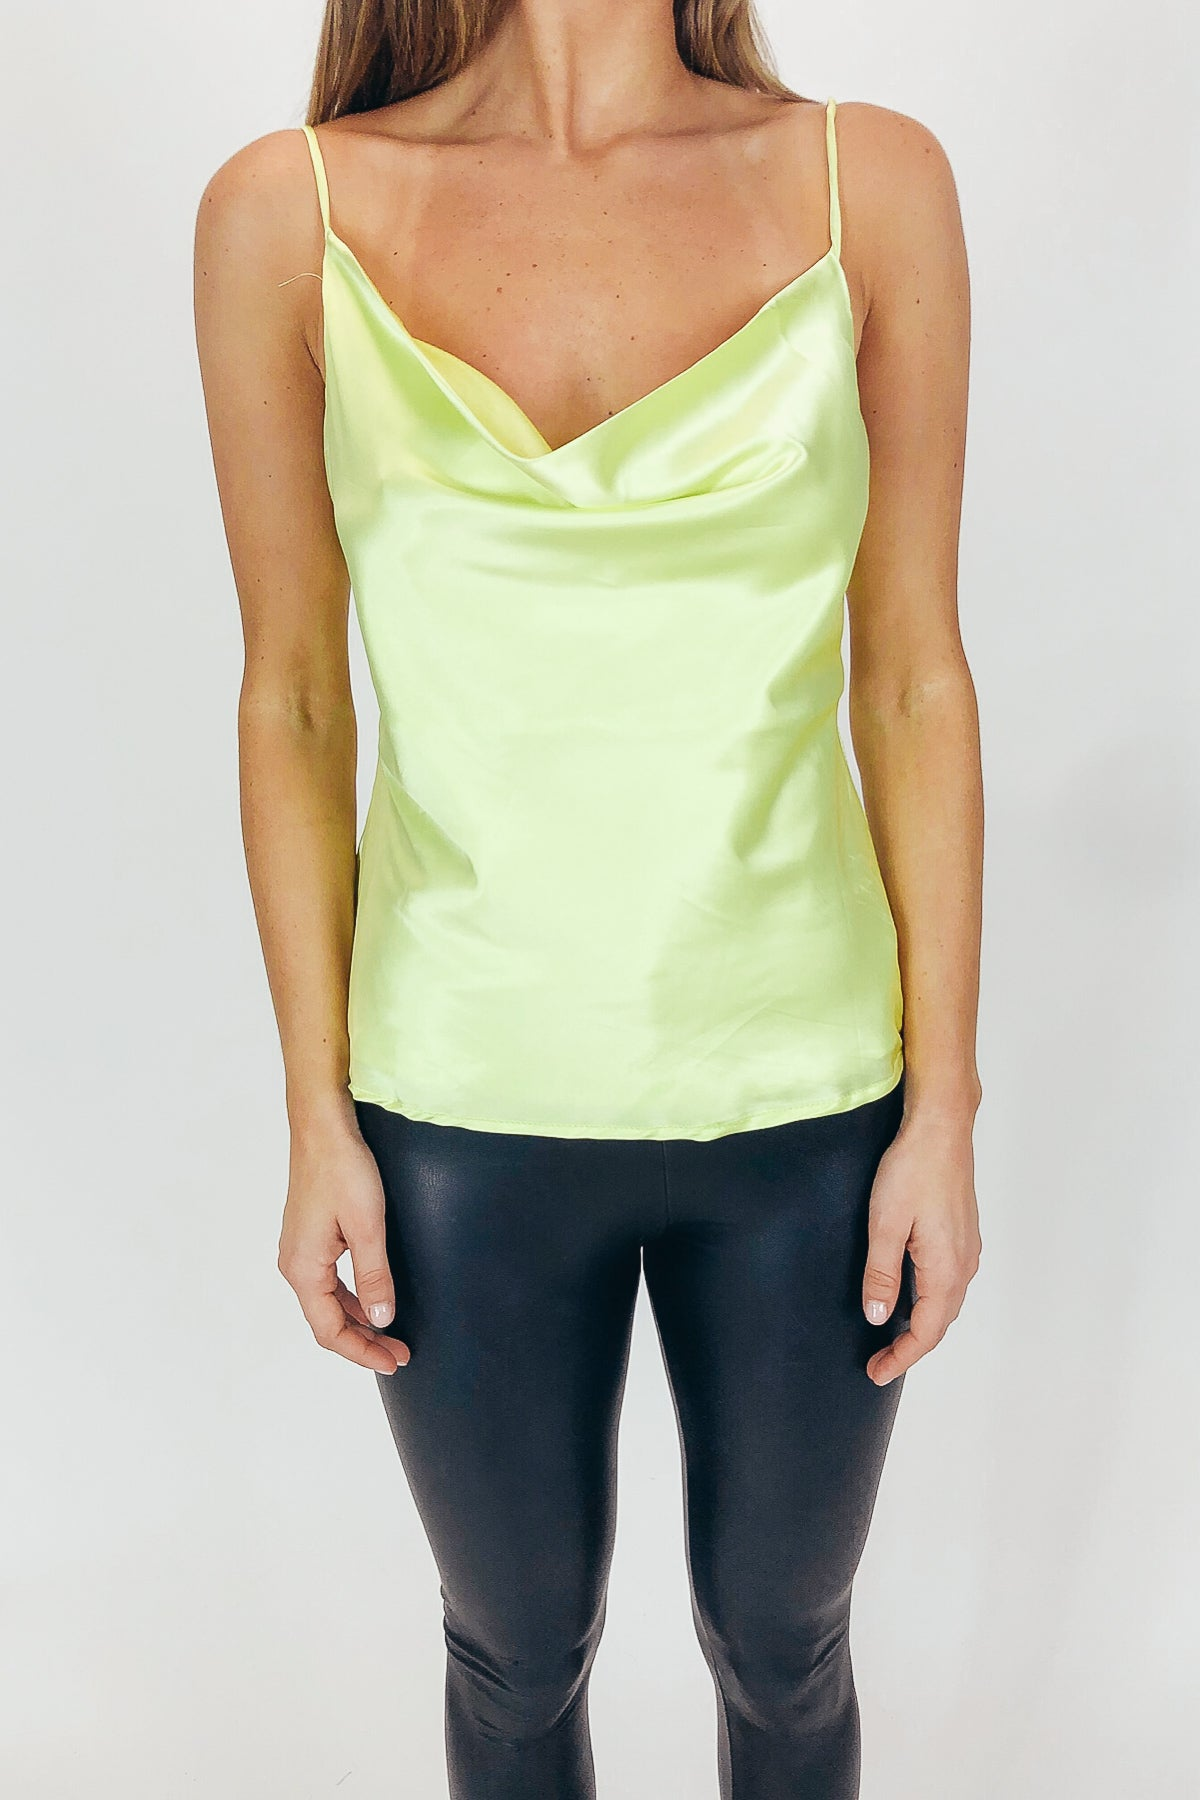 SATIN COWL NECK TOP IN LIME